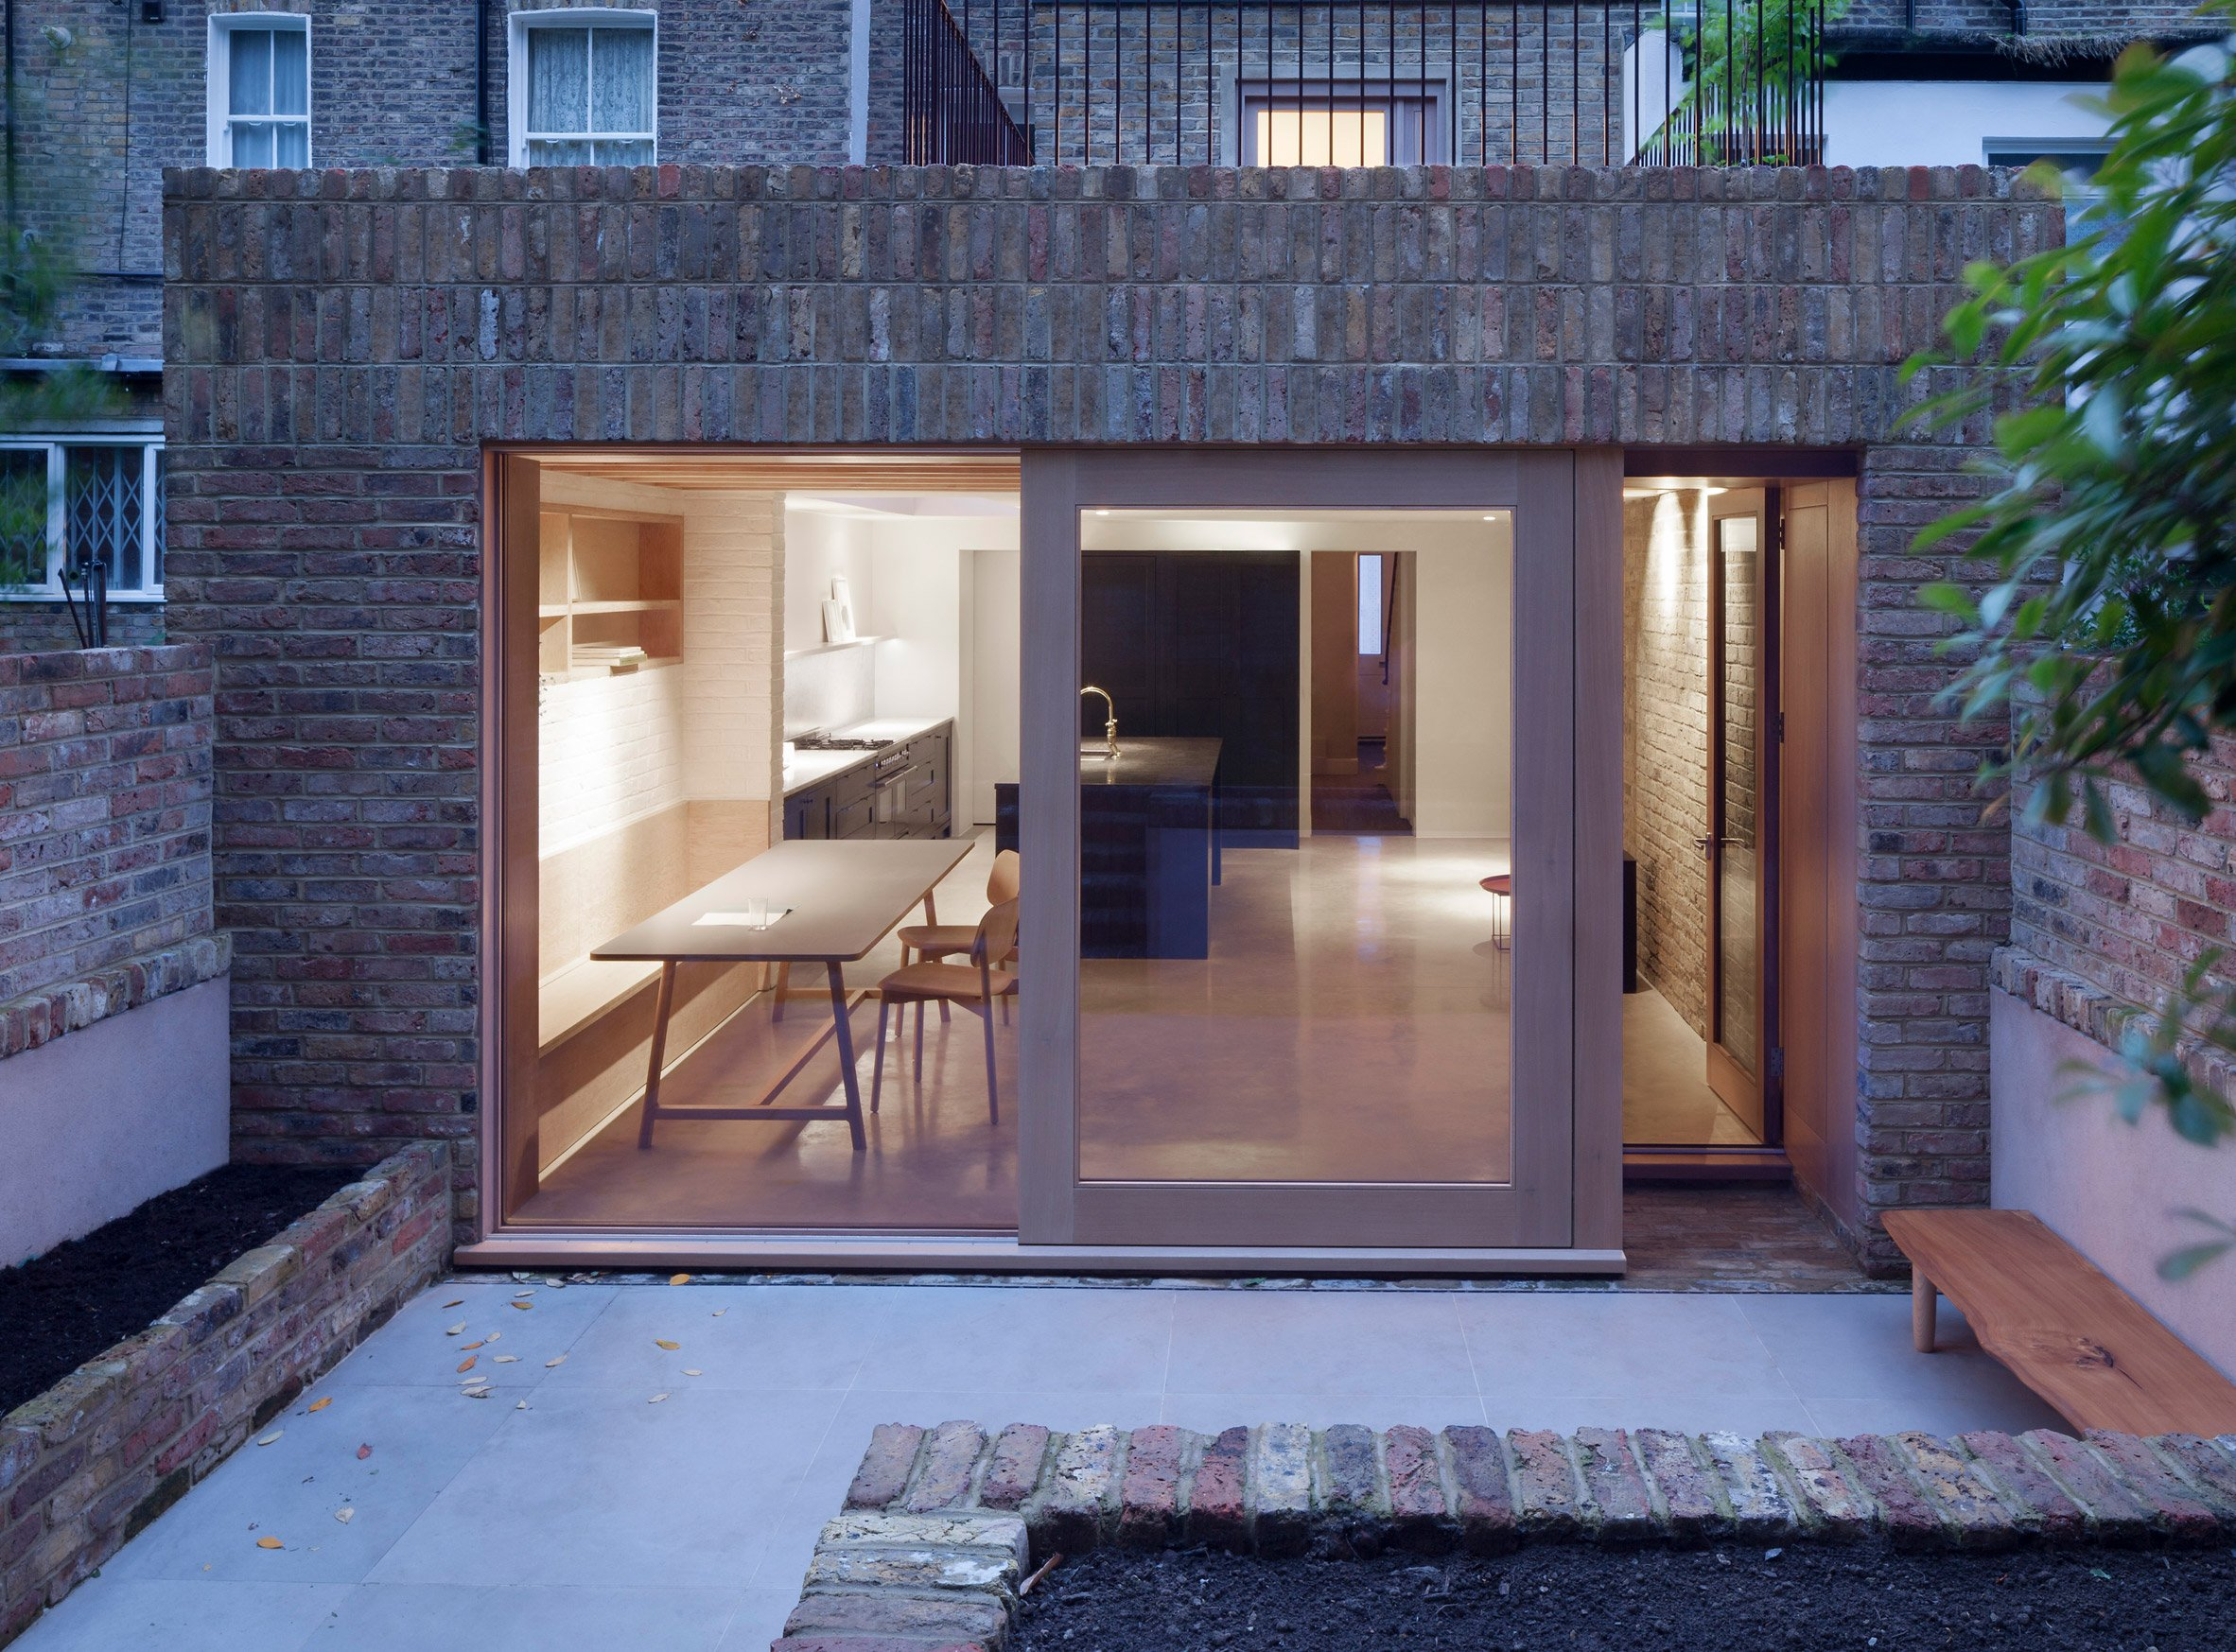 Timber and textured-brick surfaces soften interior of extension by O'Sullivan Skoufoglou Architects